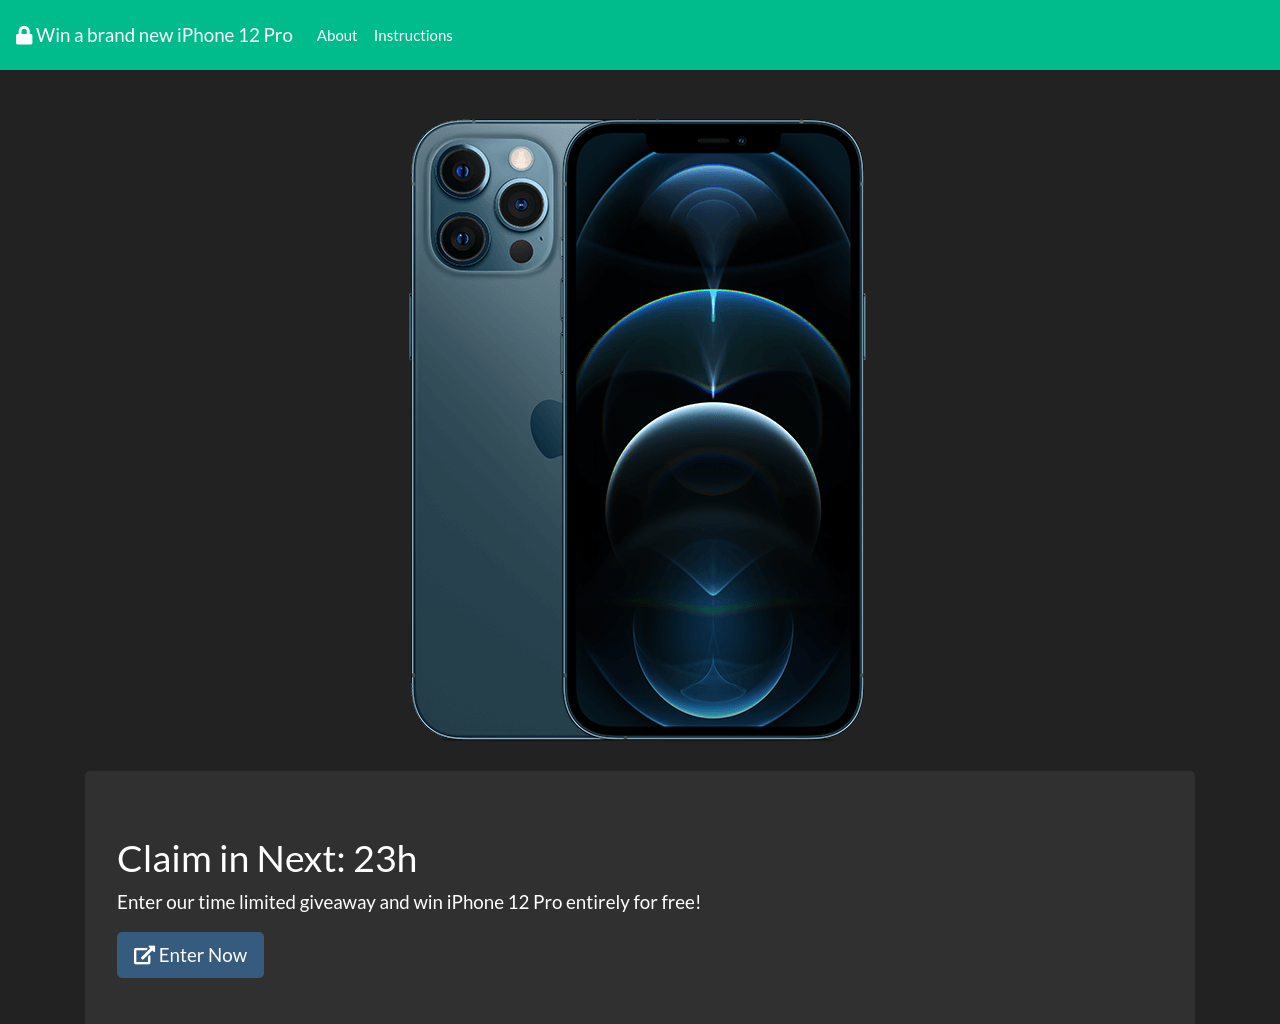 Win a brand new iPhone 12 Pro